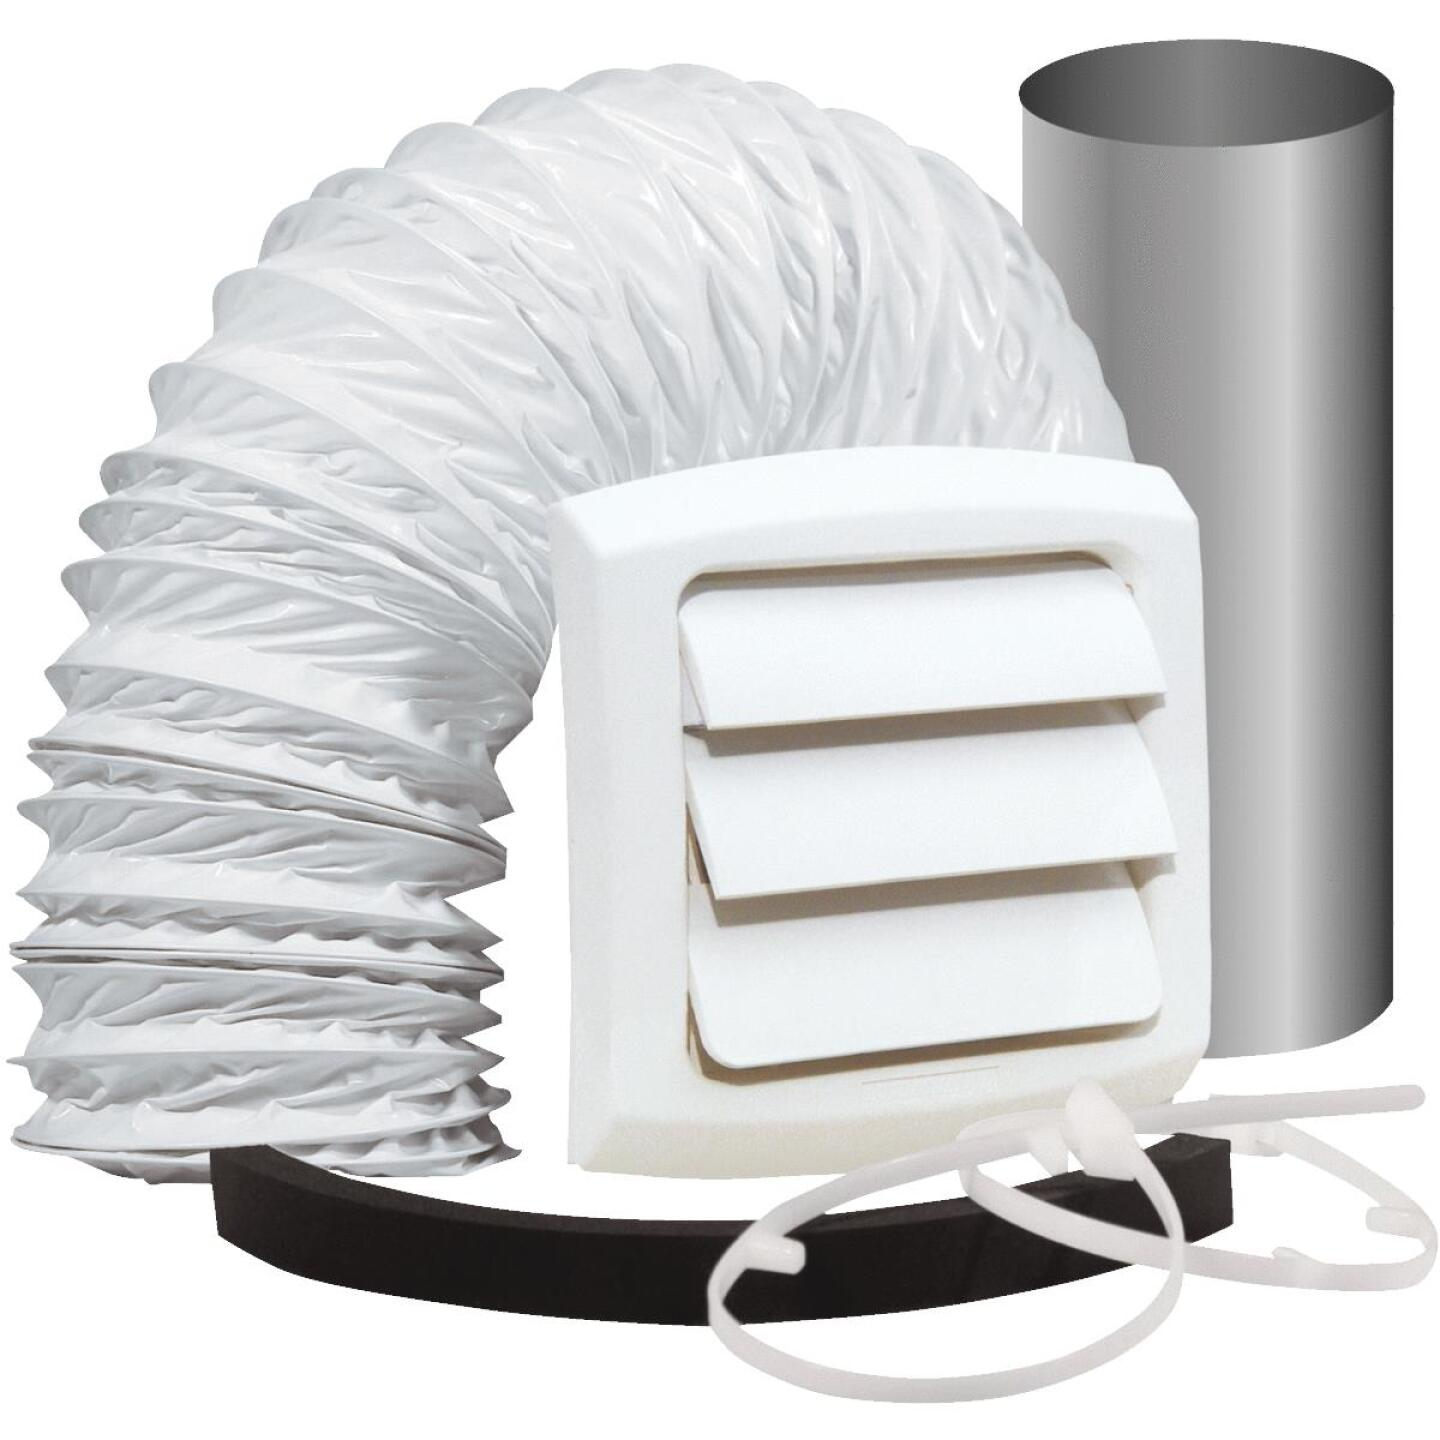 Dundas Jafine 3 In. to 4 In. Exhaust Bath Fan Vent Kit (5-Piece) Image 1